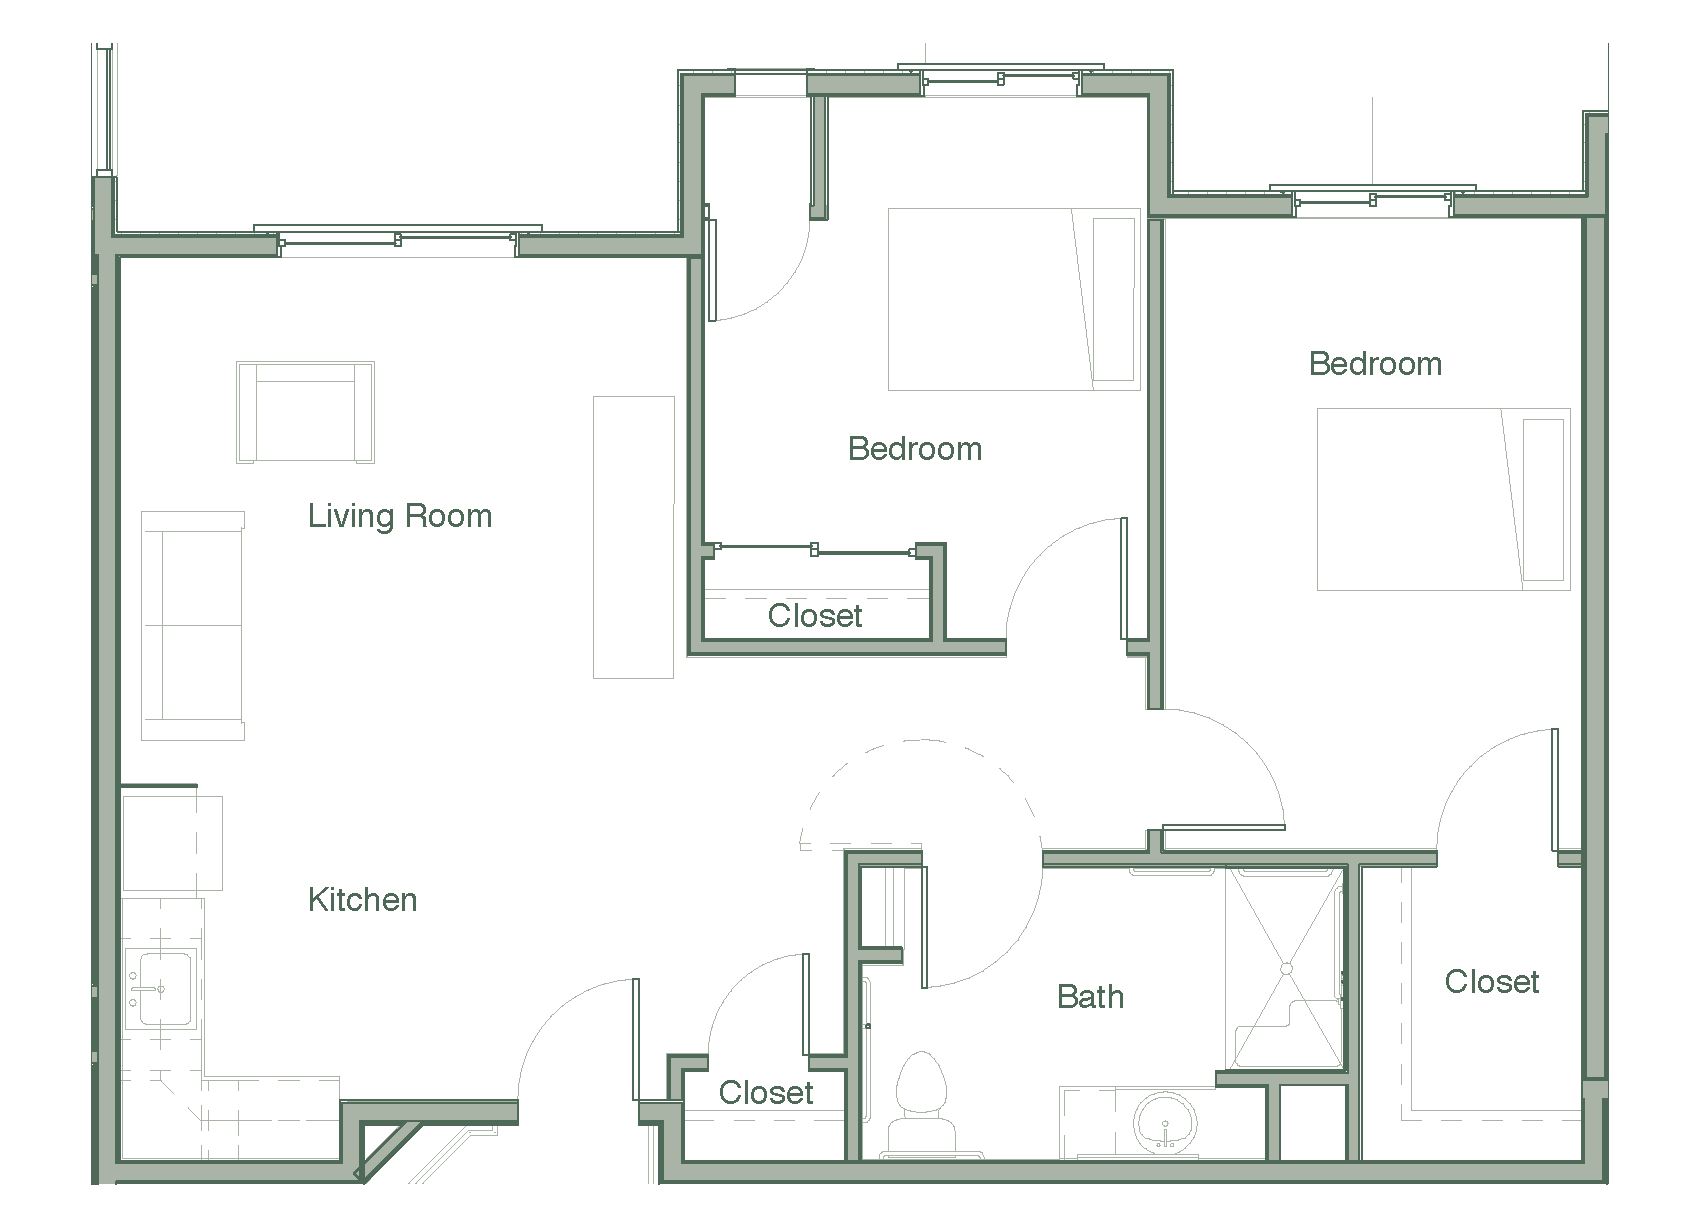 Floor Plans Legacy House Of Avondale Diagram Showing An Example A Plan Sample